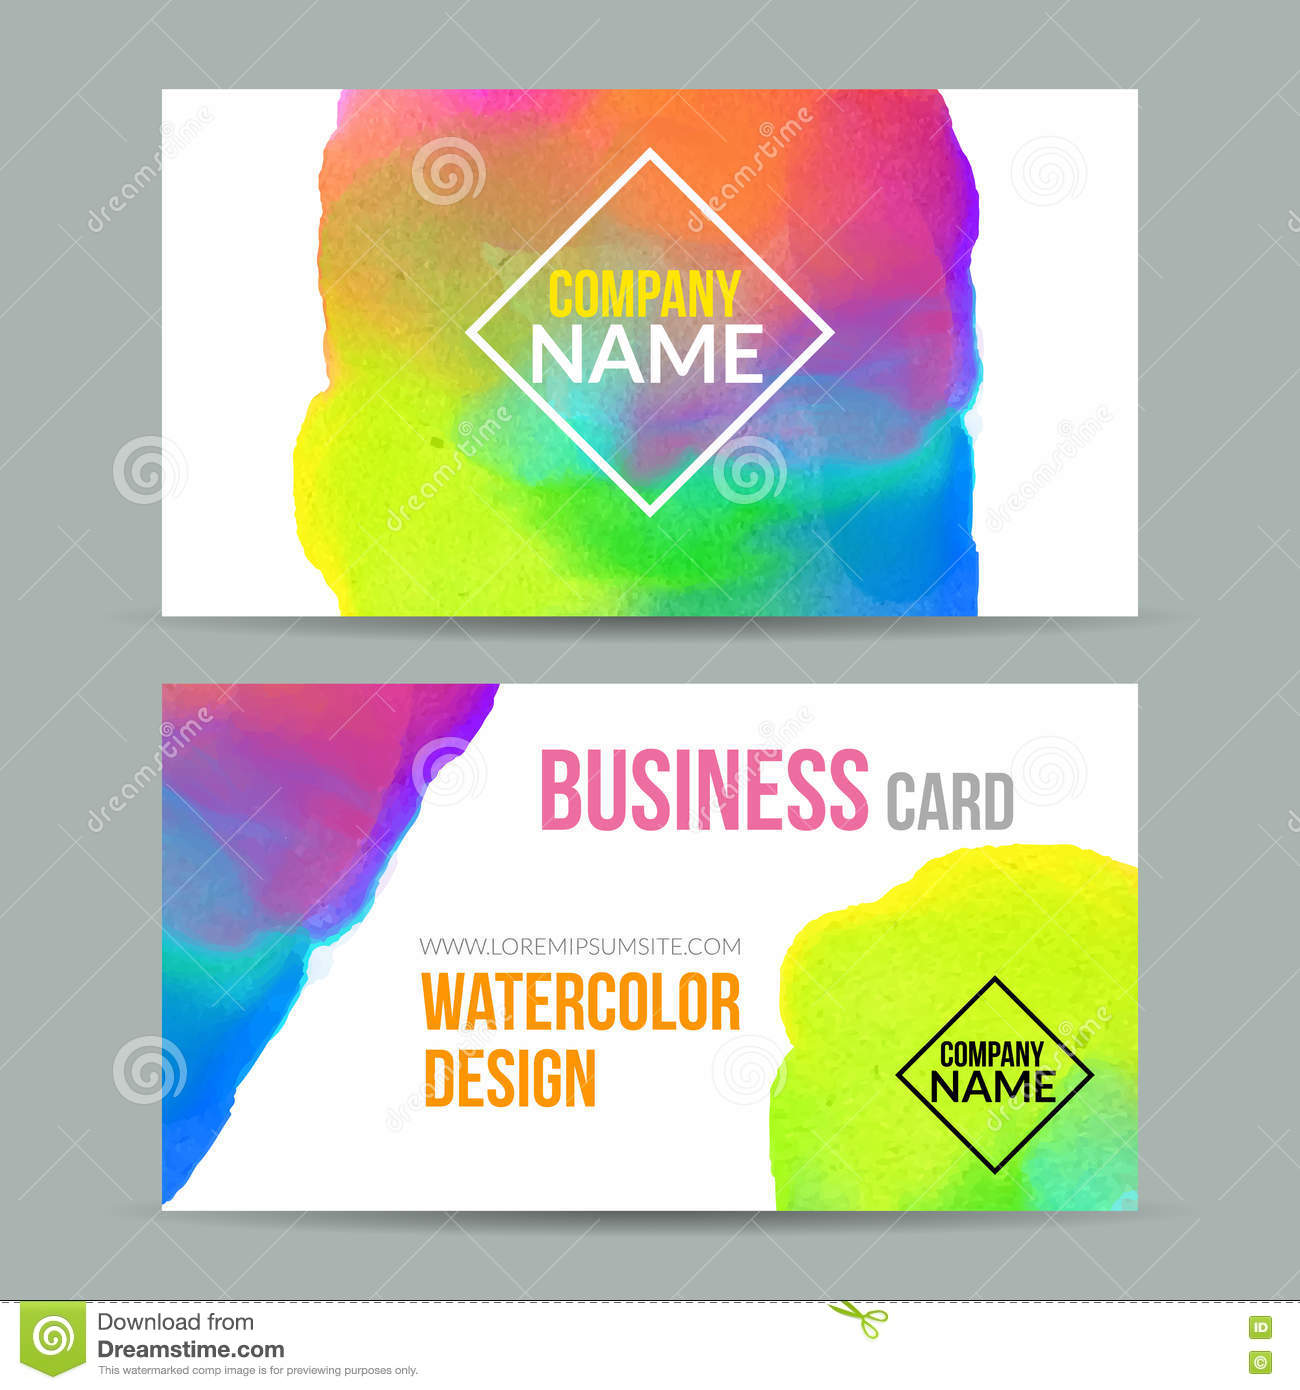 Vector template watercolor business cards stock vector vector business cards template with watercolor paint abstract background business card mockup stock photography flashek Image collections